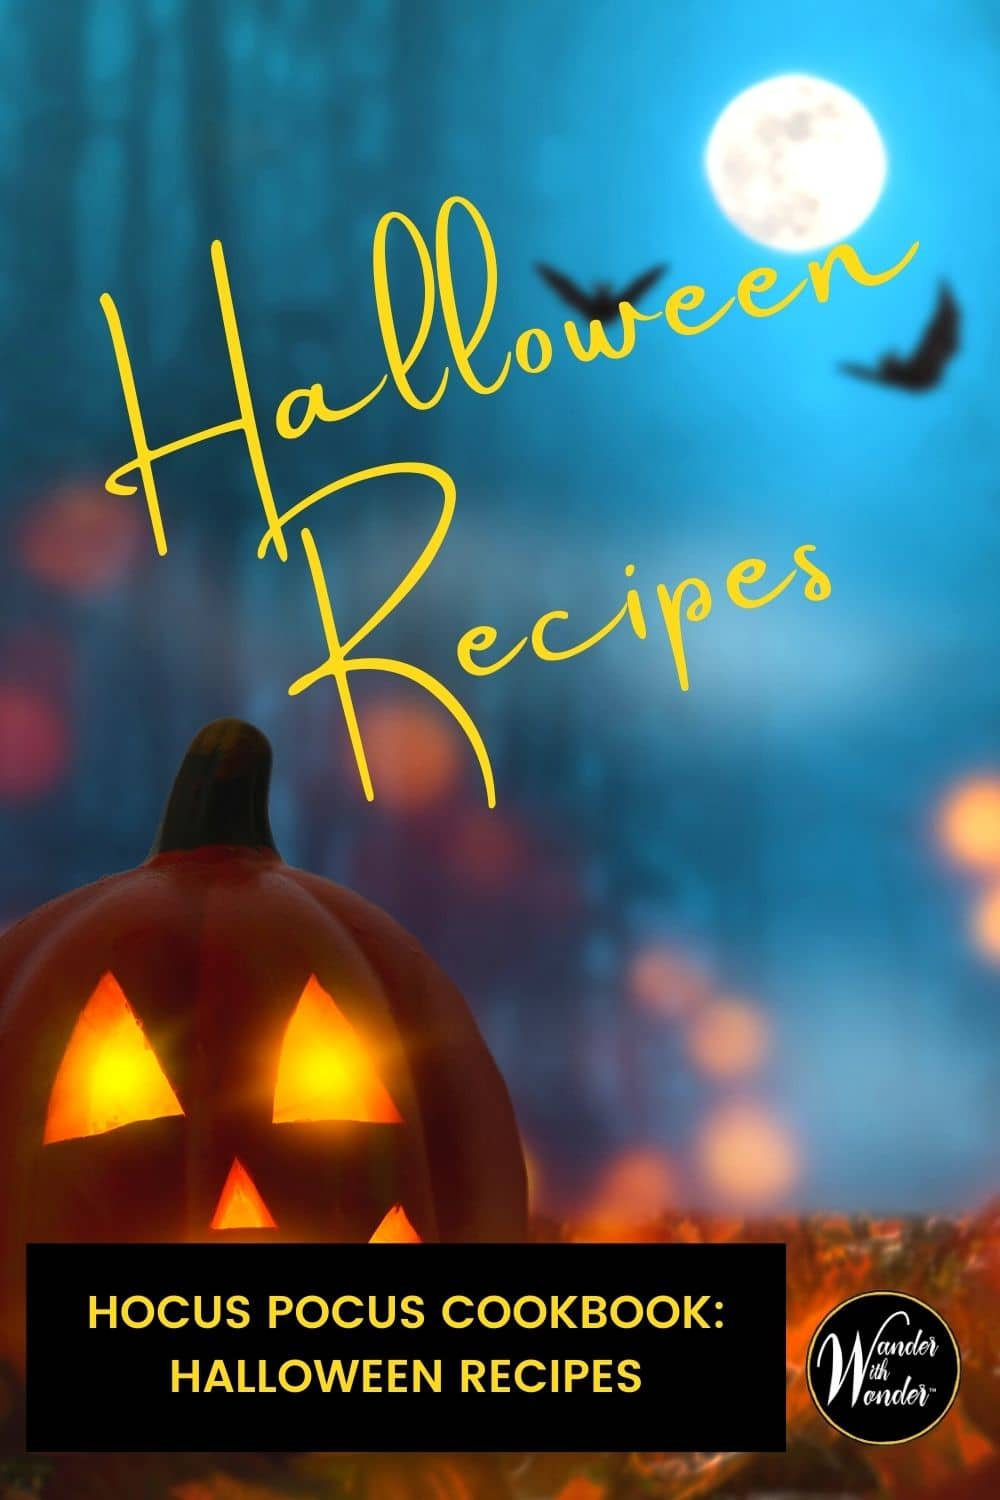 The Unofficial Hocus Pocus Cookbook is based on the cult-classic 1993 film Hocus Pocus. Halloween recipes within these pages—complete with color photos—will be the hit of the party this October!There are appetizer recipes, main dish recipes, fun fall cocktail recipes, and plenty of great Halloween party food and fun!